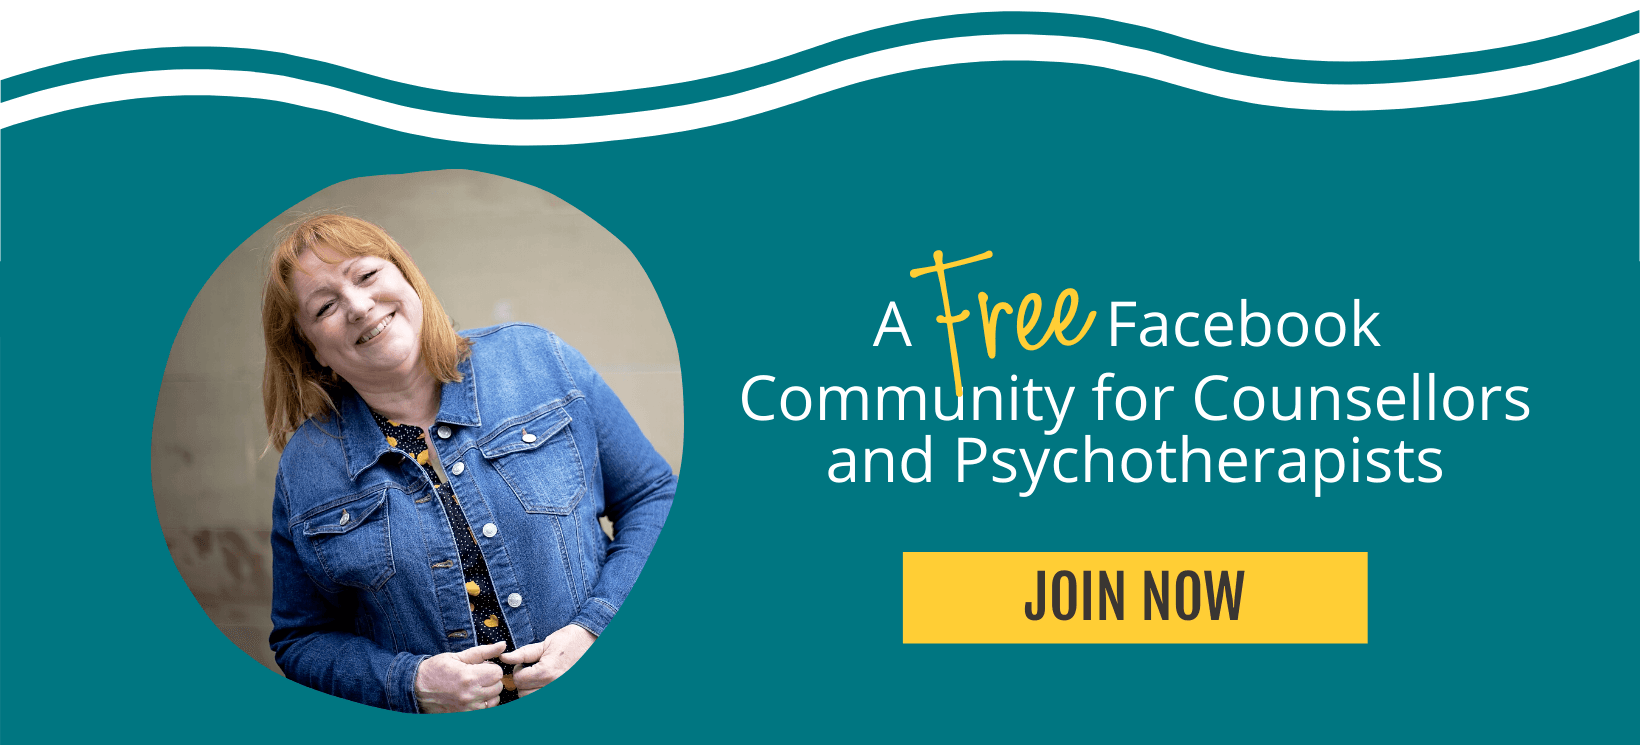 FREE Facebook group for counsellors and psychotherapists